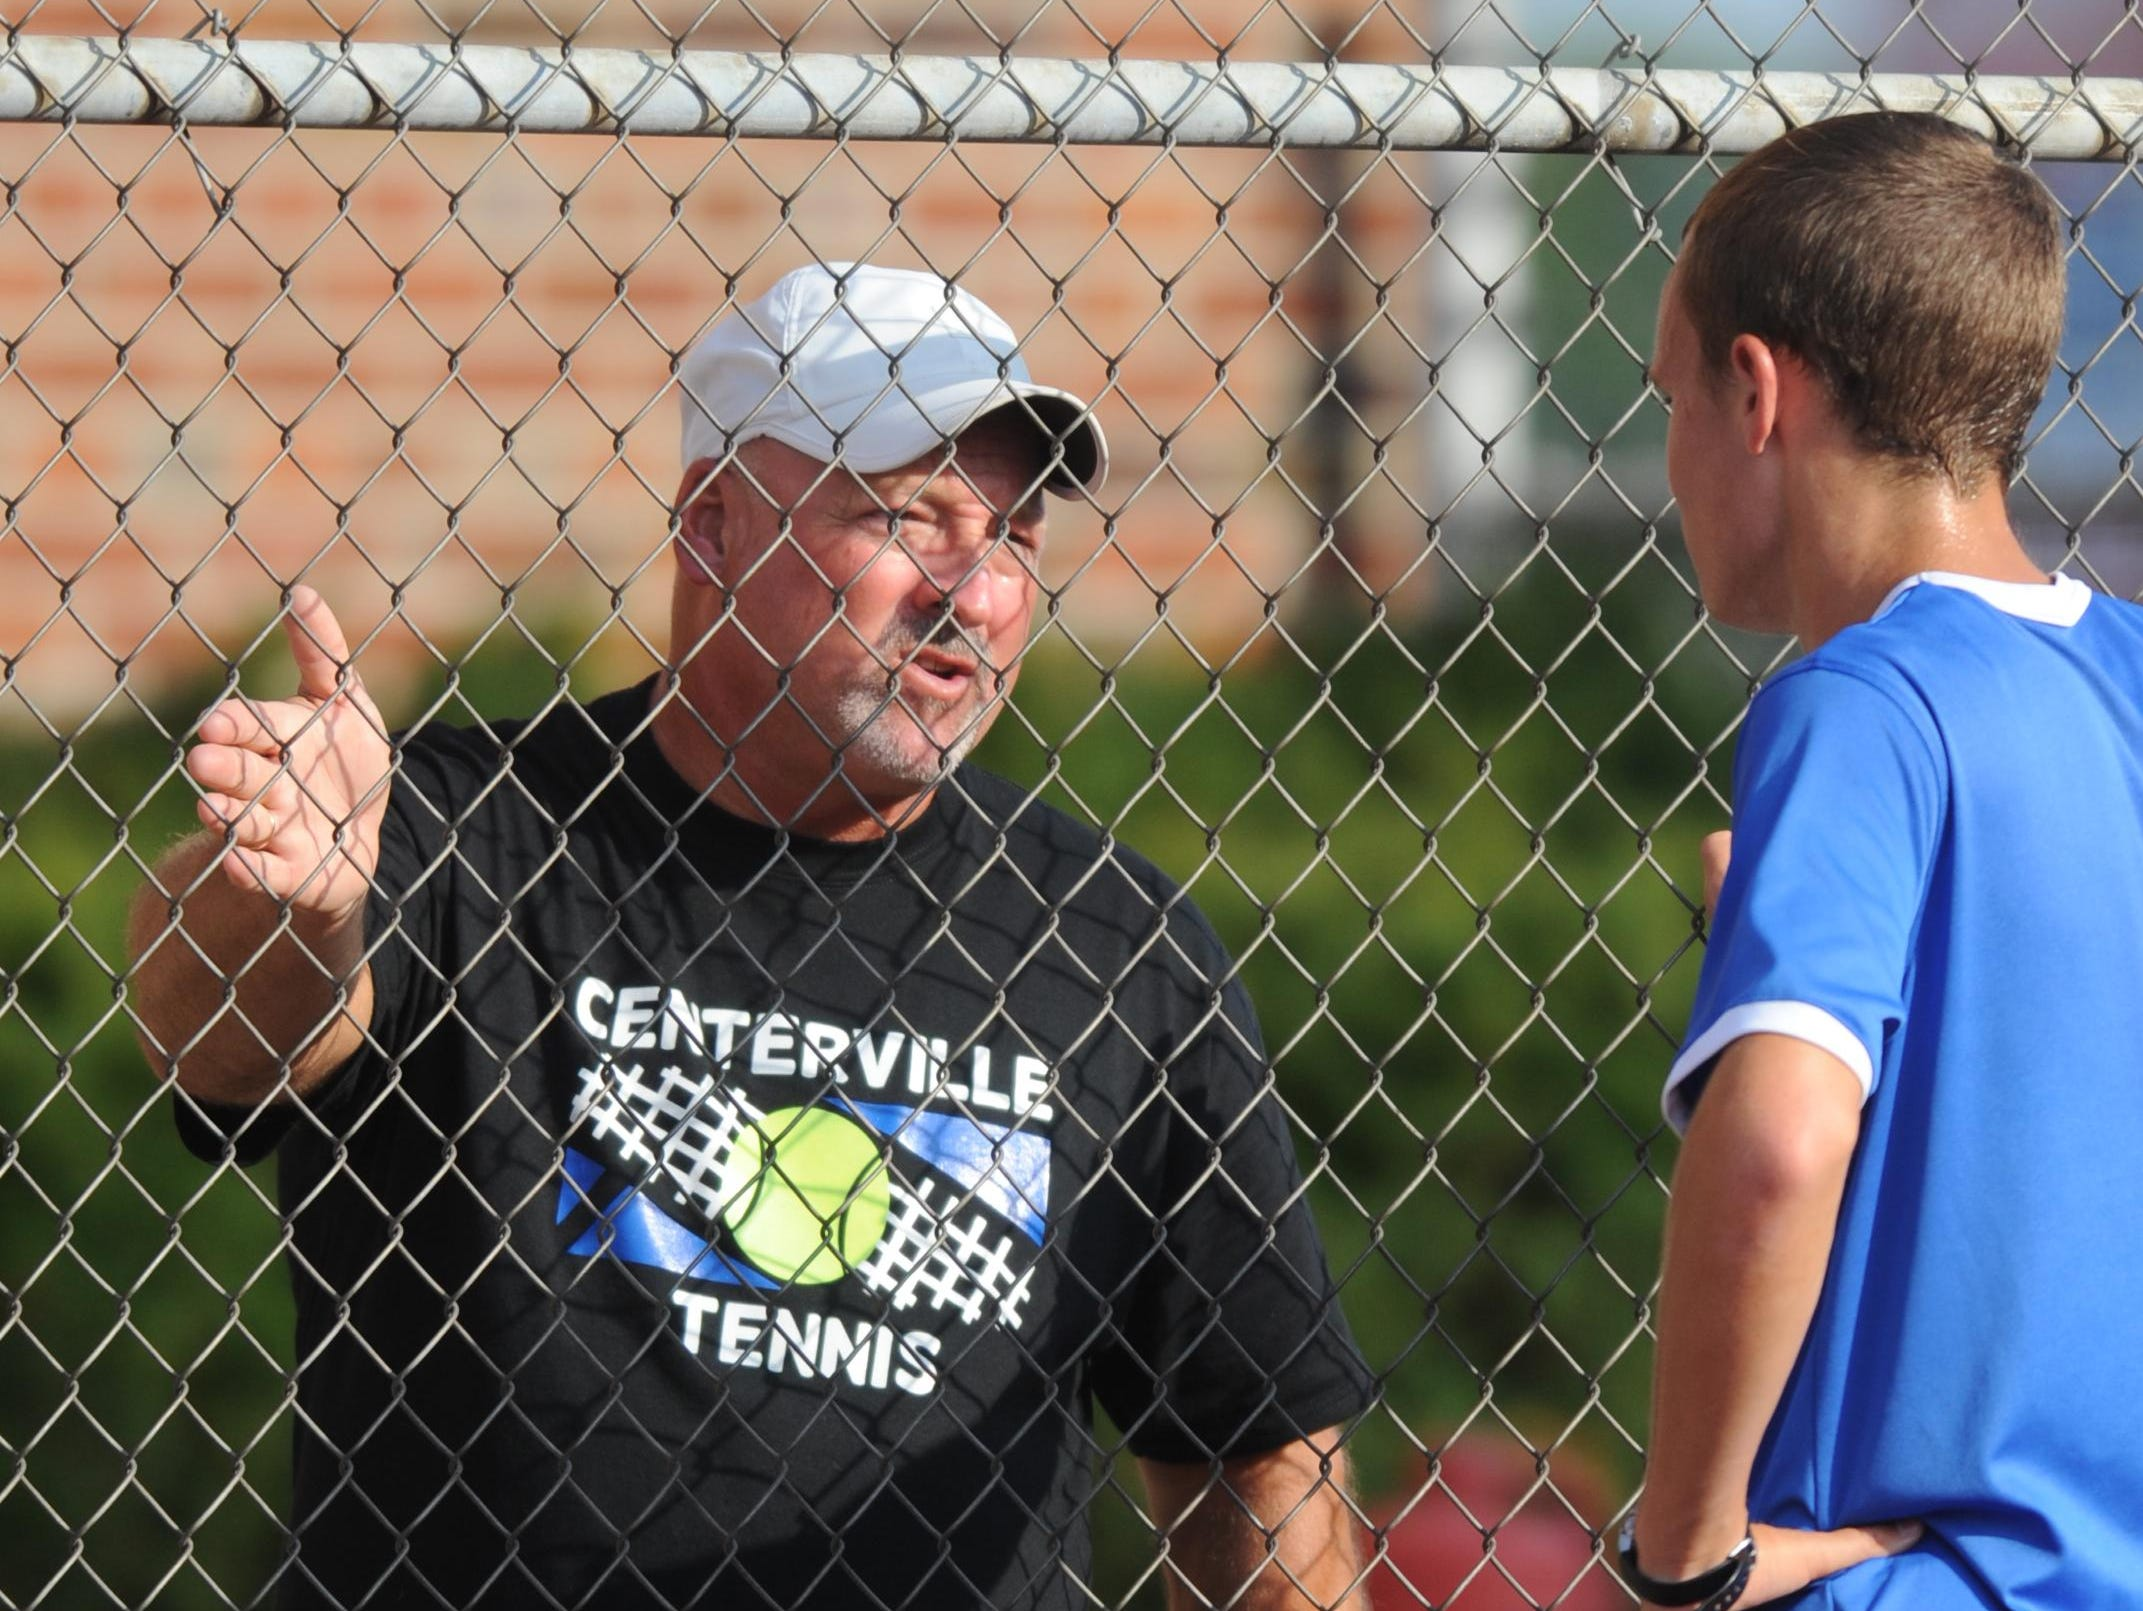 Randy Ecker has coached Centerville's boys tennis program for 35 years. He'll coach against daughter Courtney, in her first year leading Hagerstown, on Thursday.